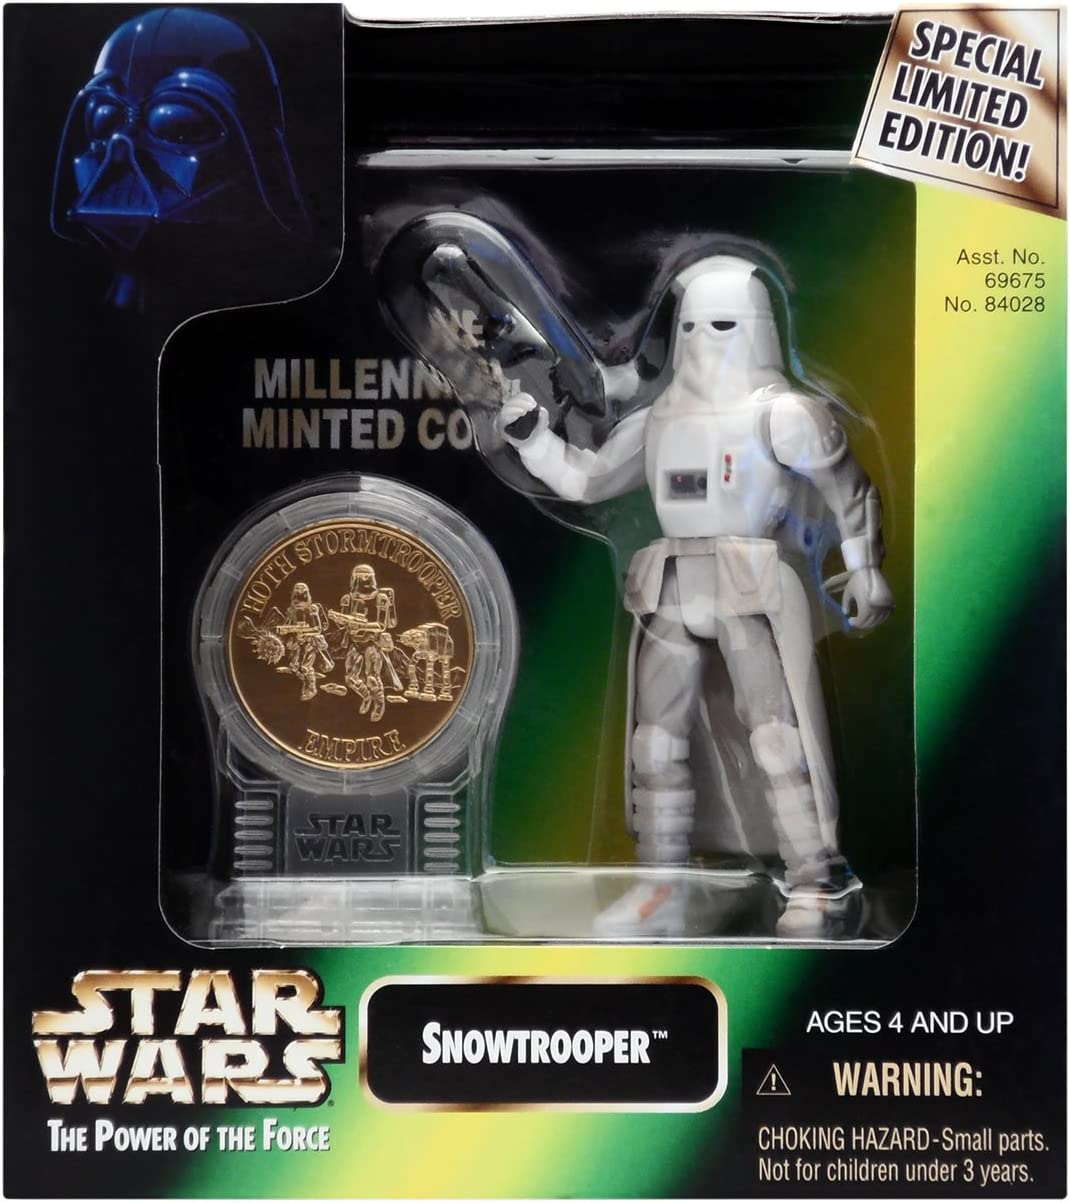 Star Wars The Power of the Force Chewbacca Action Figure with Gold Coin 3.75 Inches